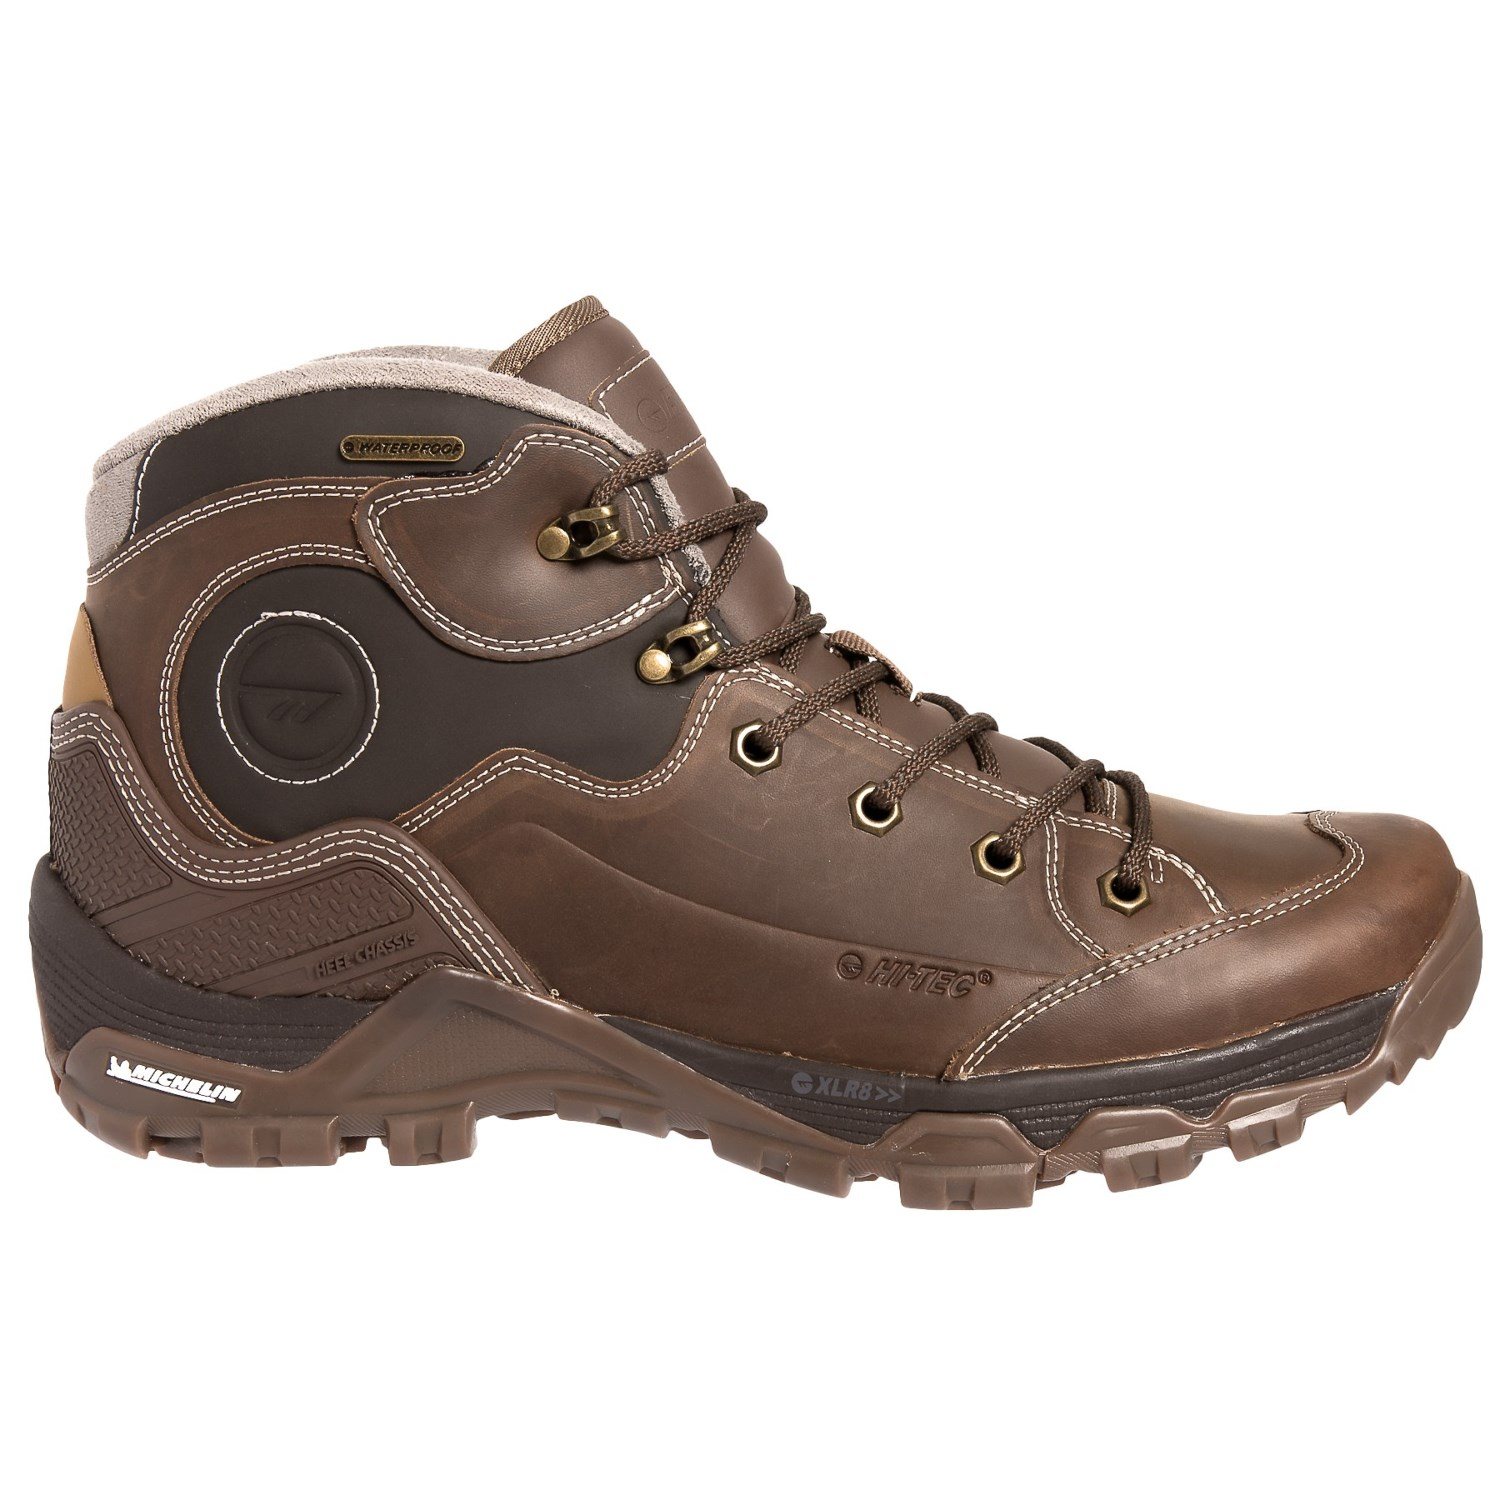 Ox Discovery Mid I Hiking Boots - Waterproof, Leather (For Men)